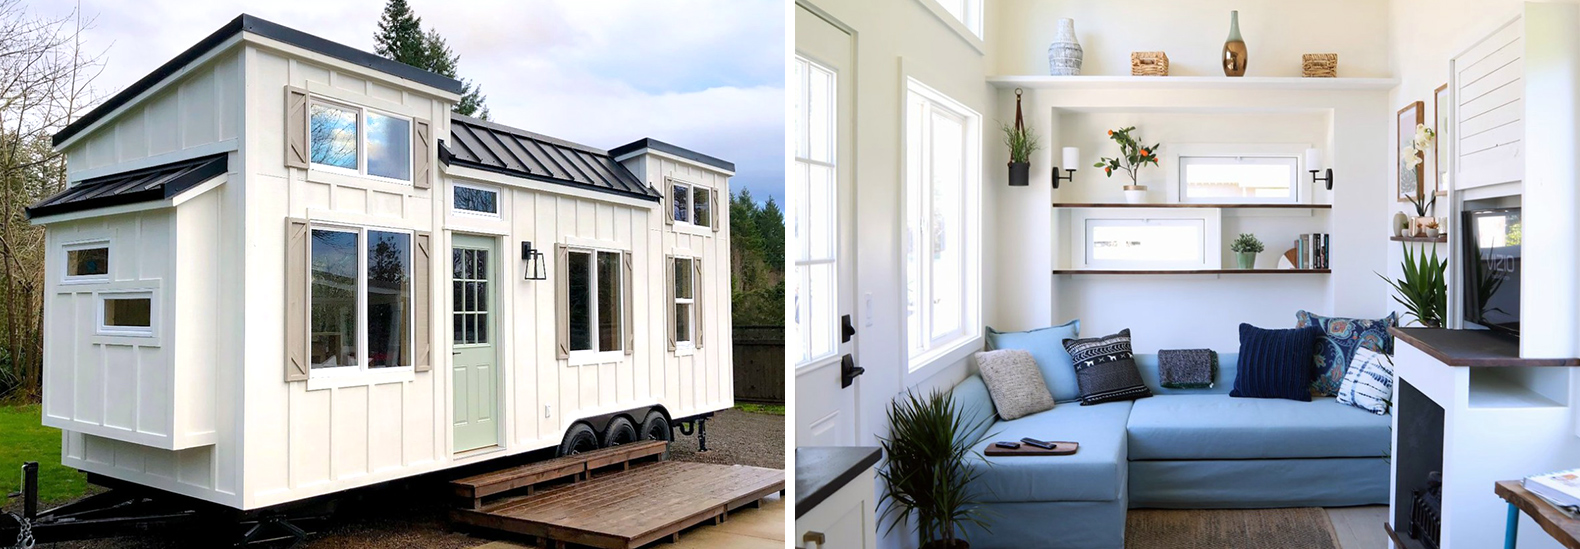 Tiny Home Designs: Handcrafted Movement's Coastal Craftsman Tiny House Is Big